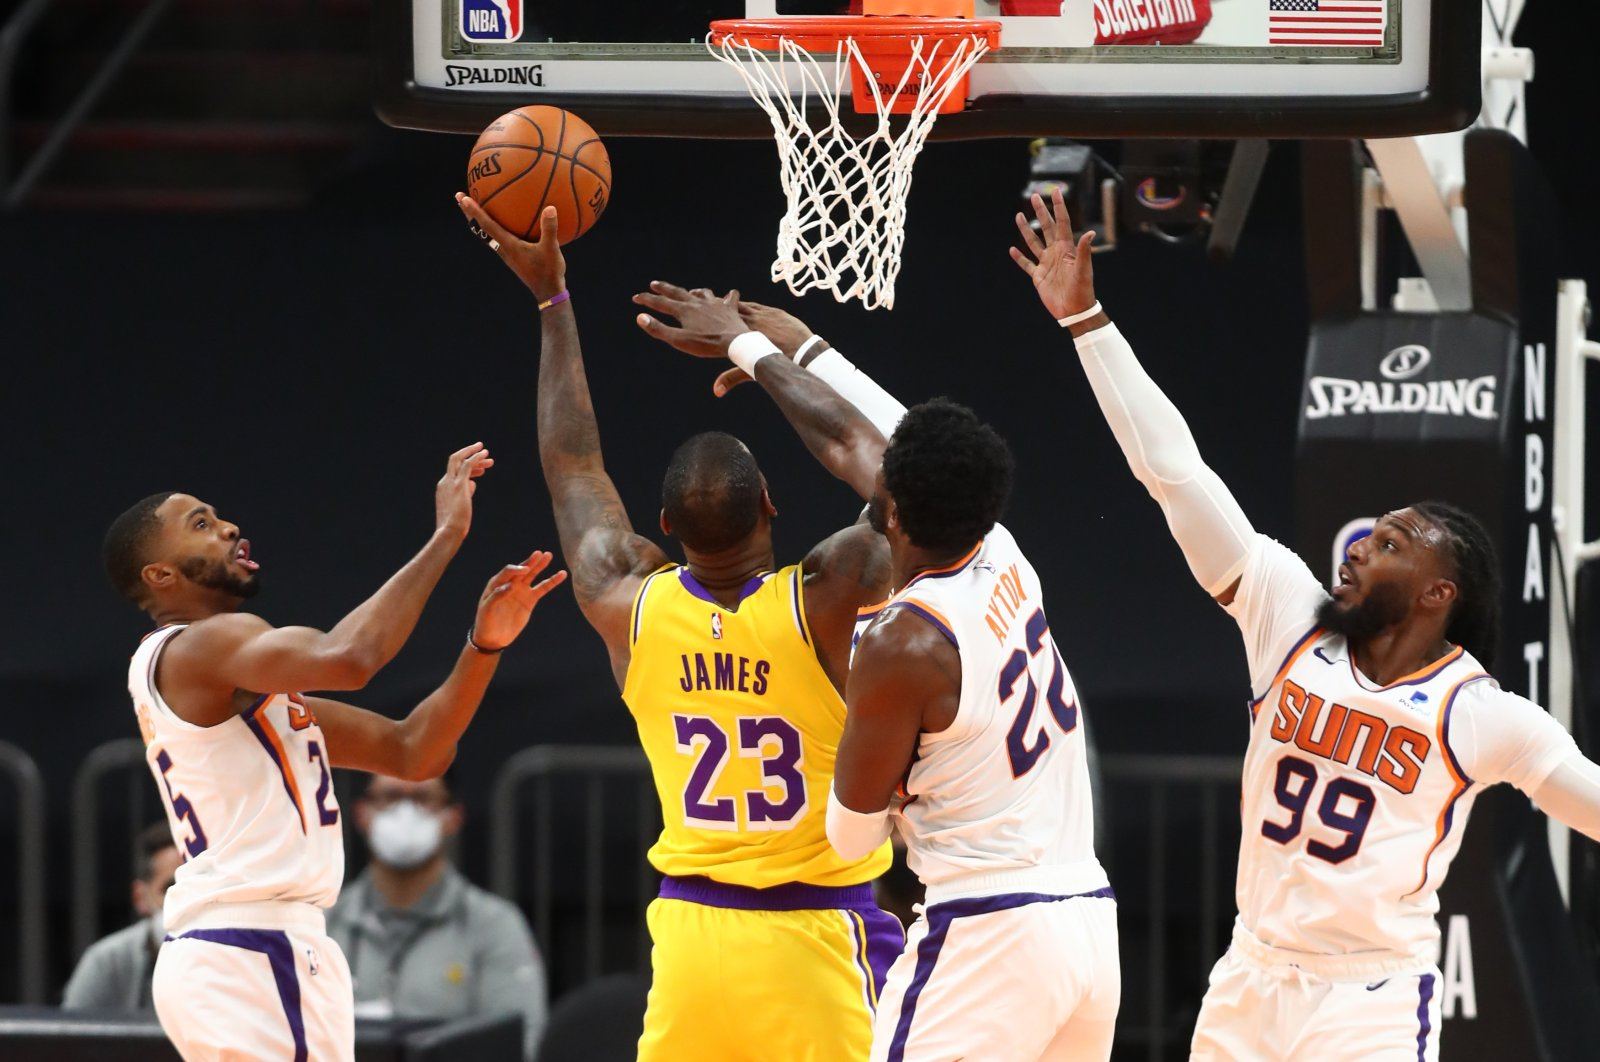 Los Angeles Lakers' LeBron James (23) drives to the basket against Phoenix Suns players, in a preseason game in Arizona, Dec. 18, 2020. (REUTERS PHOTO)